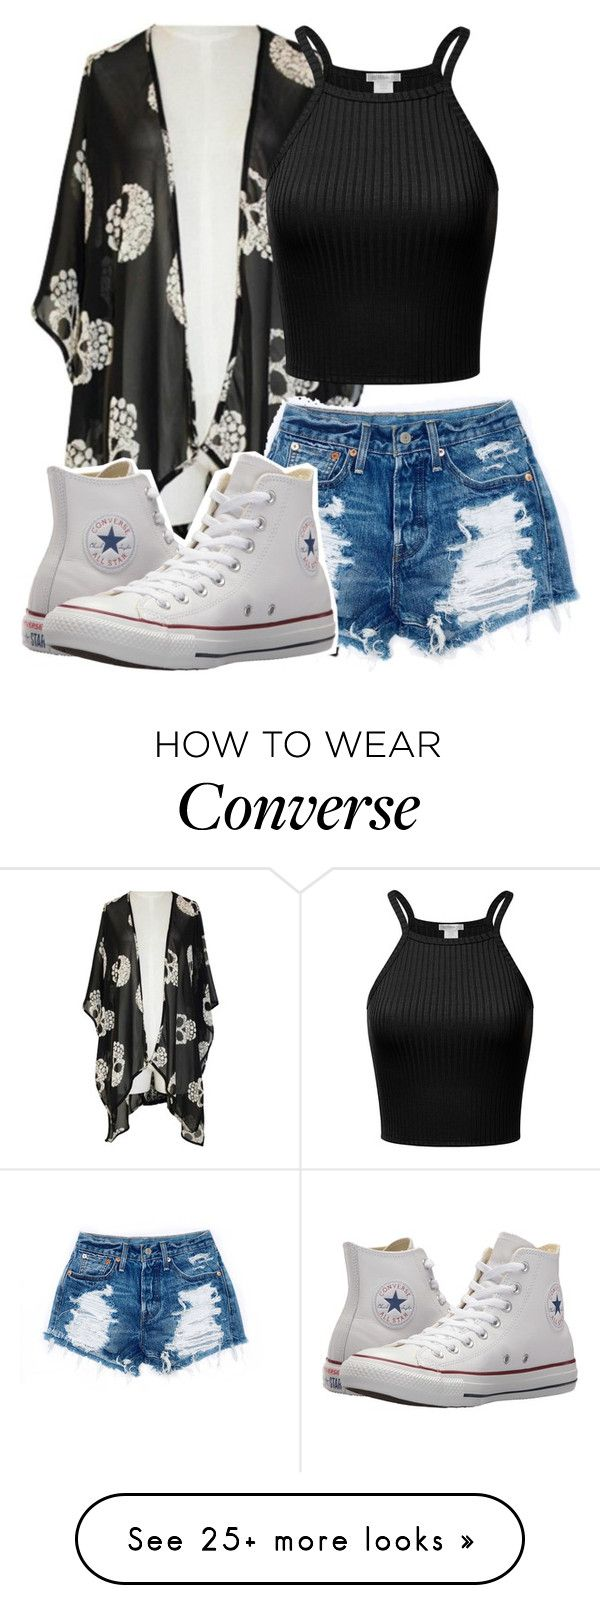 """""""Tatiana Ramones"""" by misshemmings96 on Polyvore featuring Converse"""